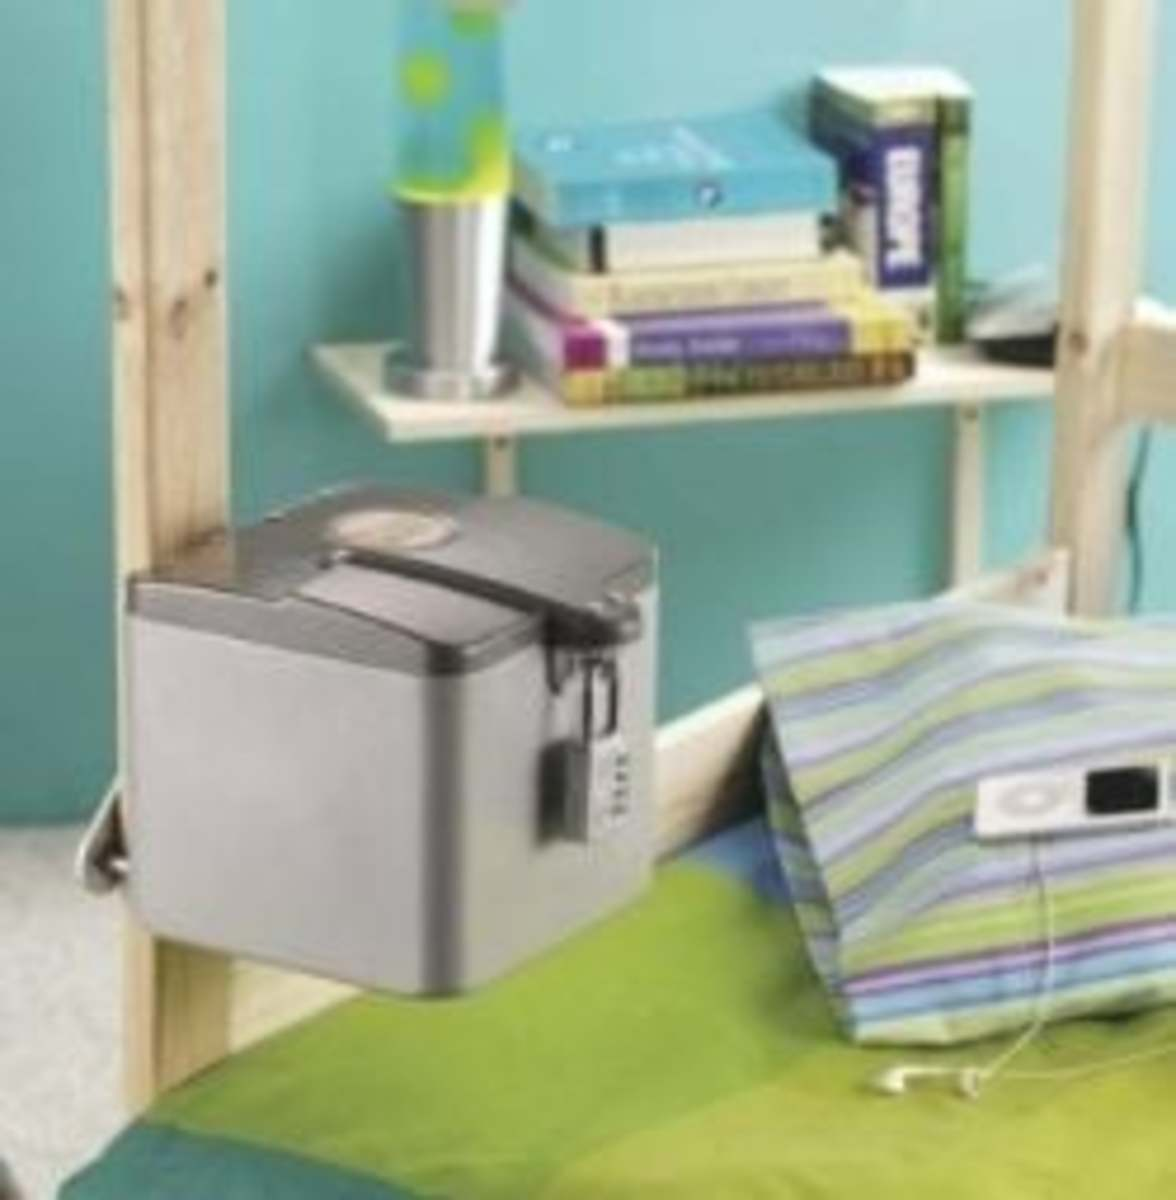 Best Portable Safes And Personal Lock Boxes For Dorm Room Security |  HubPages Part 57